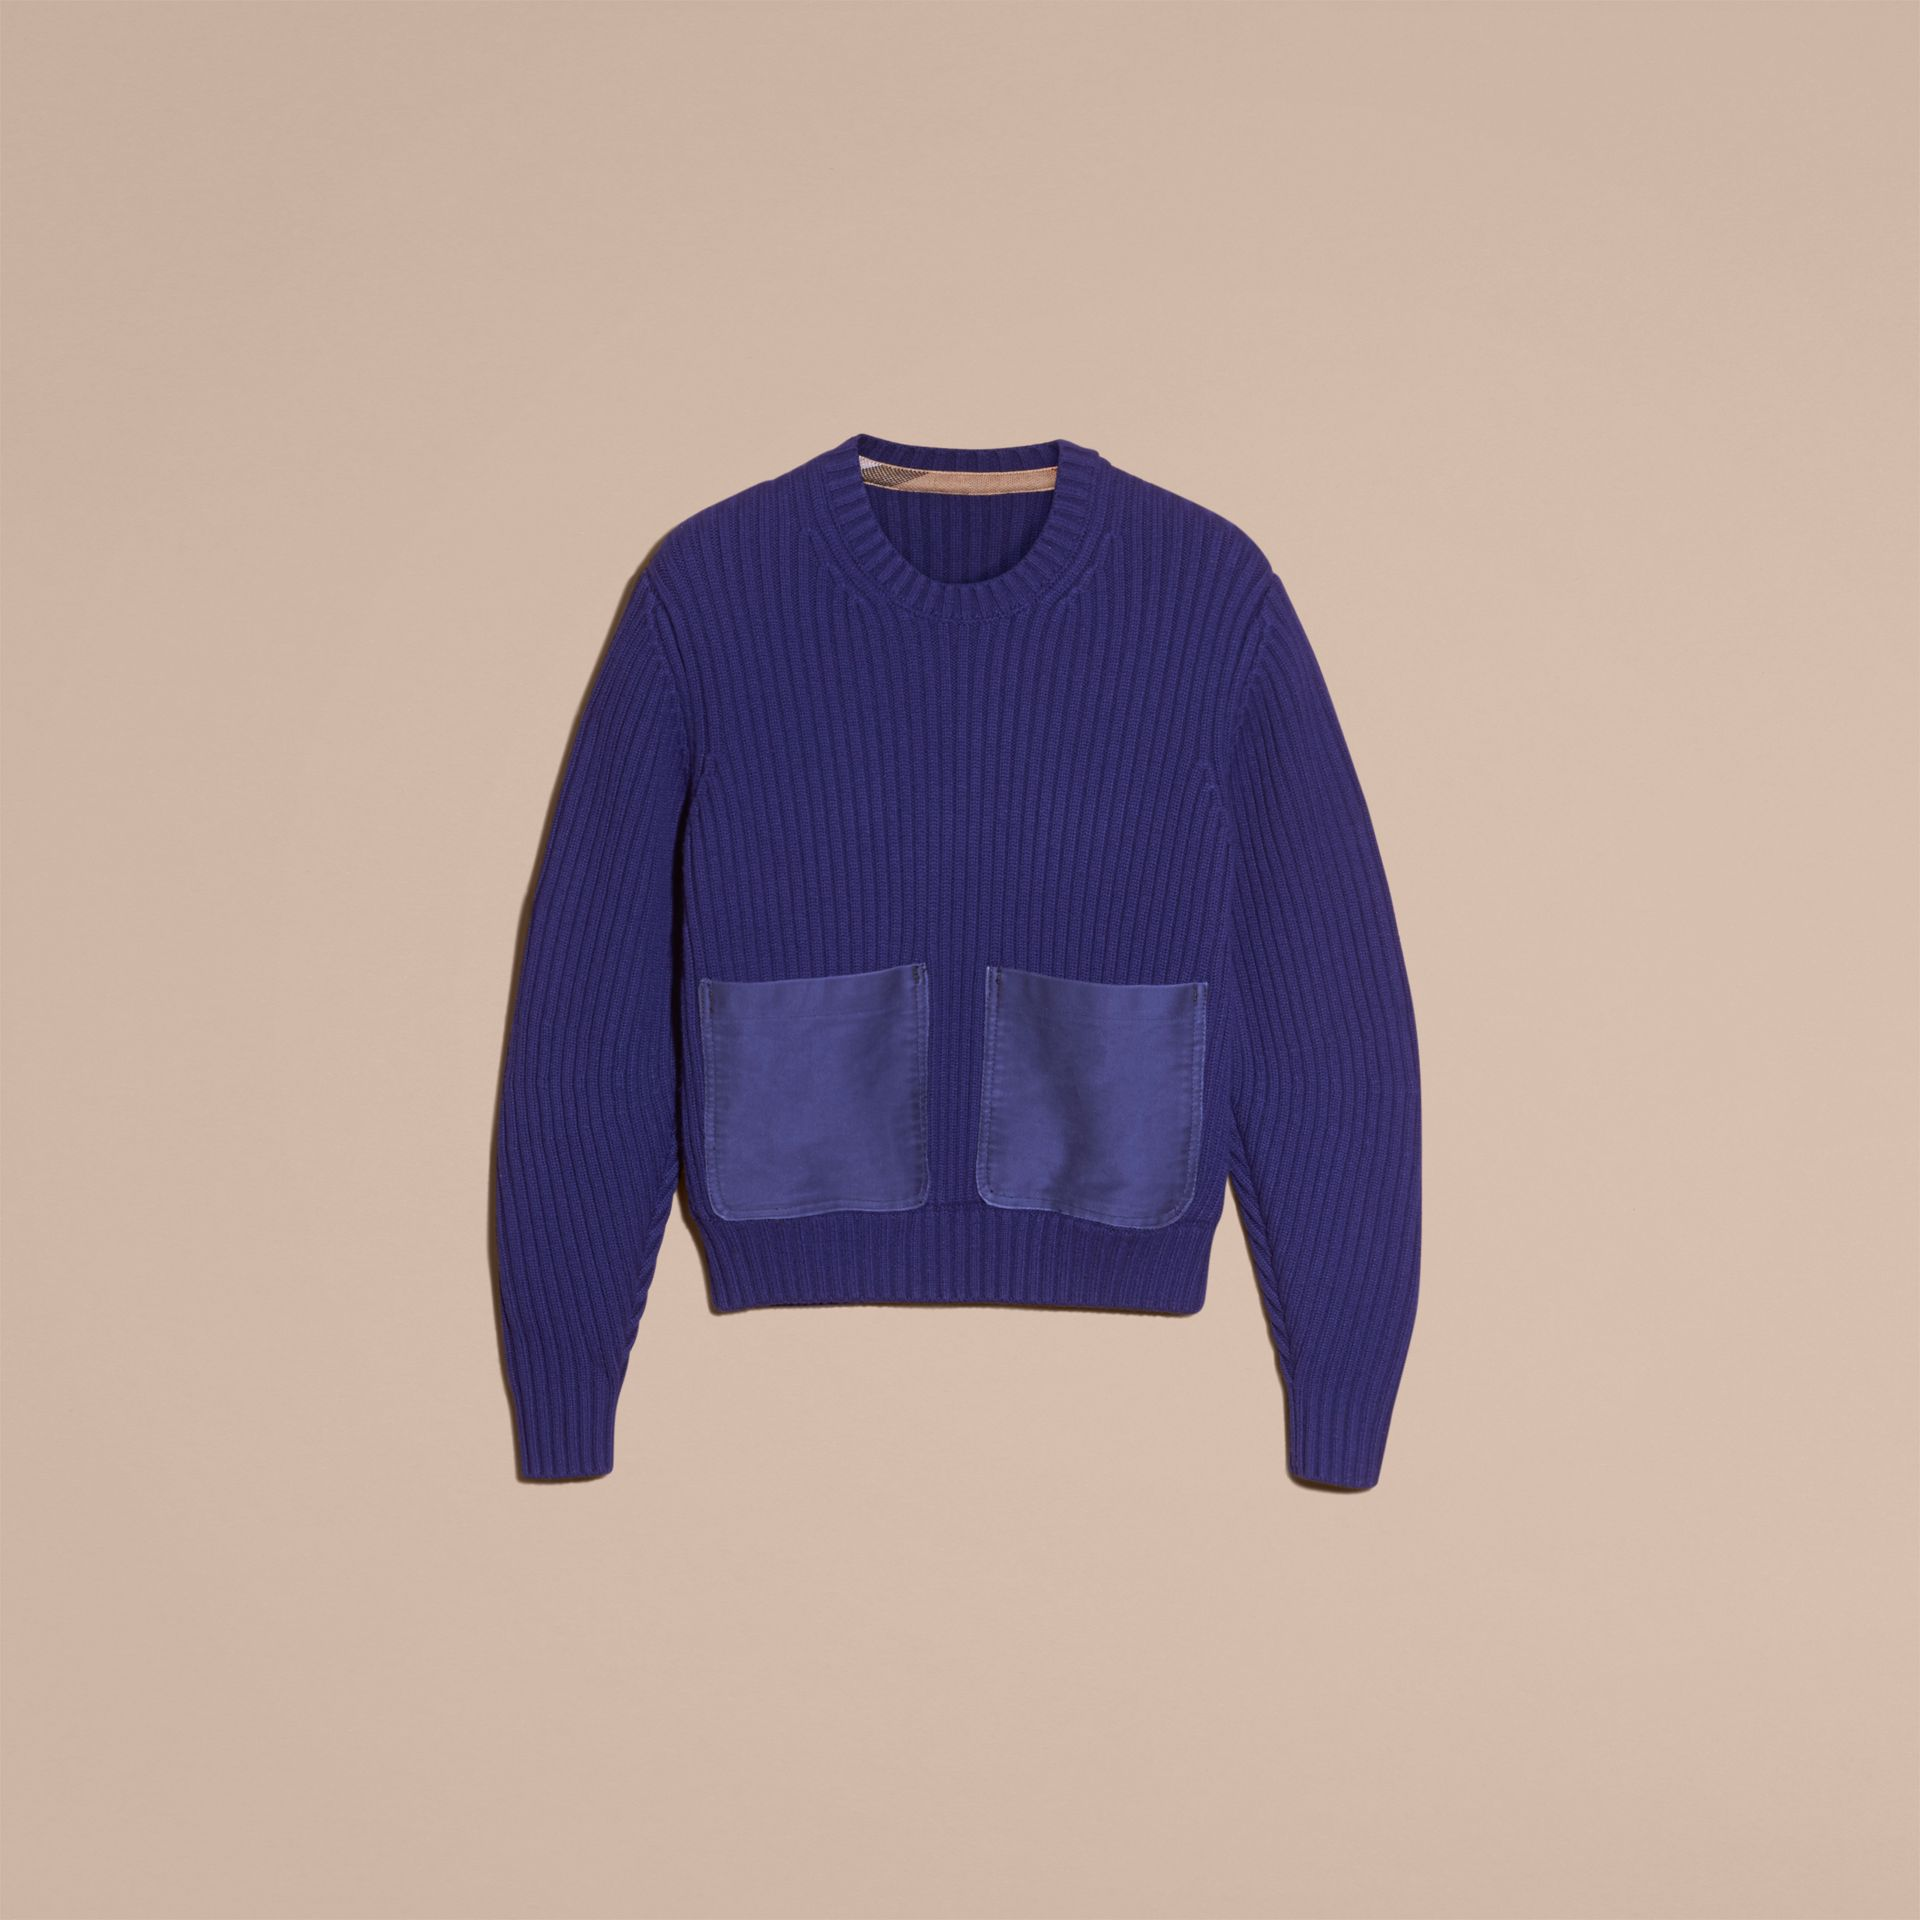 Oversize Pocket Detail Rib Knit Cashmere Cotton Sweater - gallery image 4